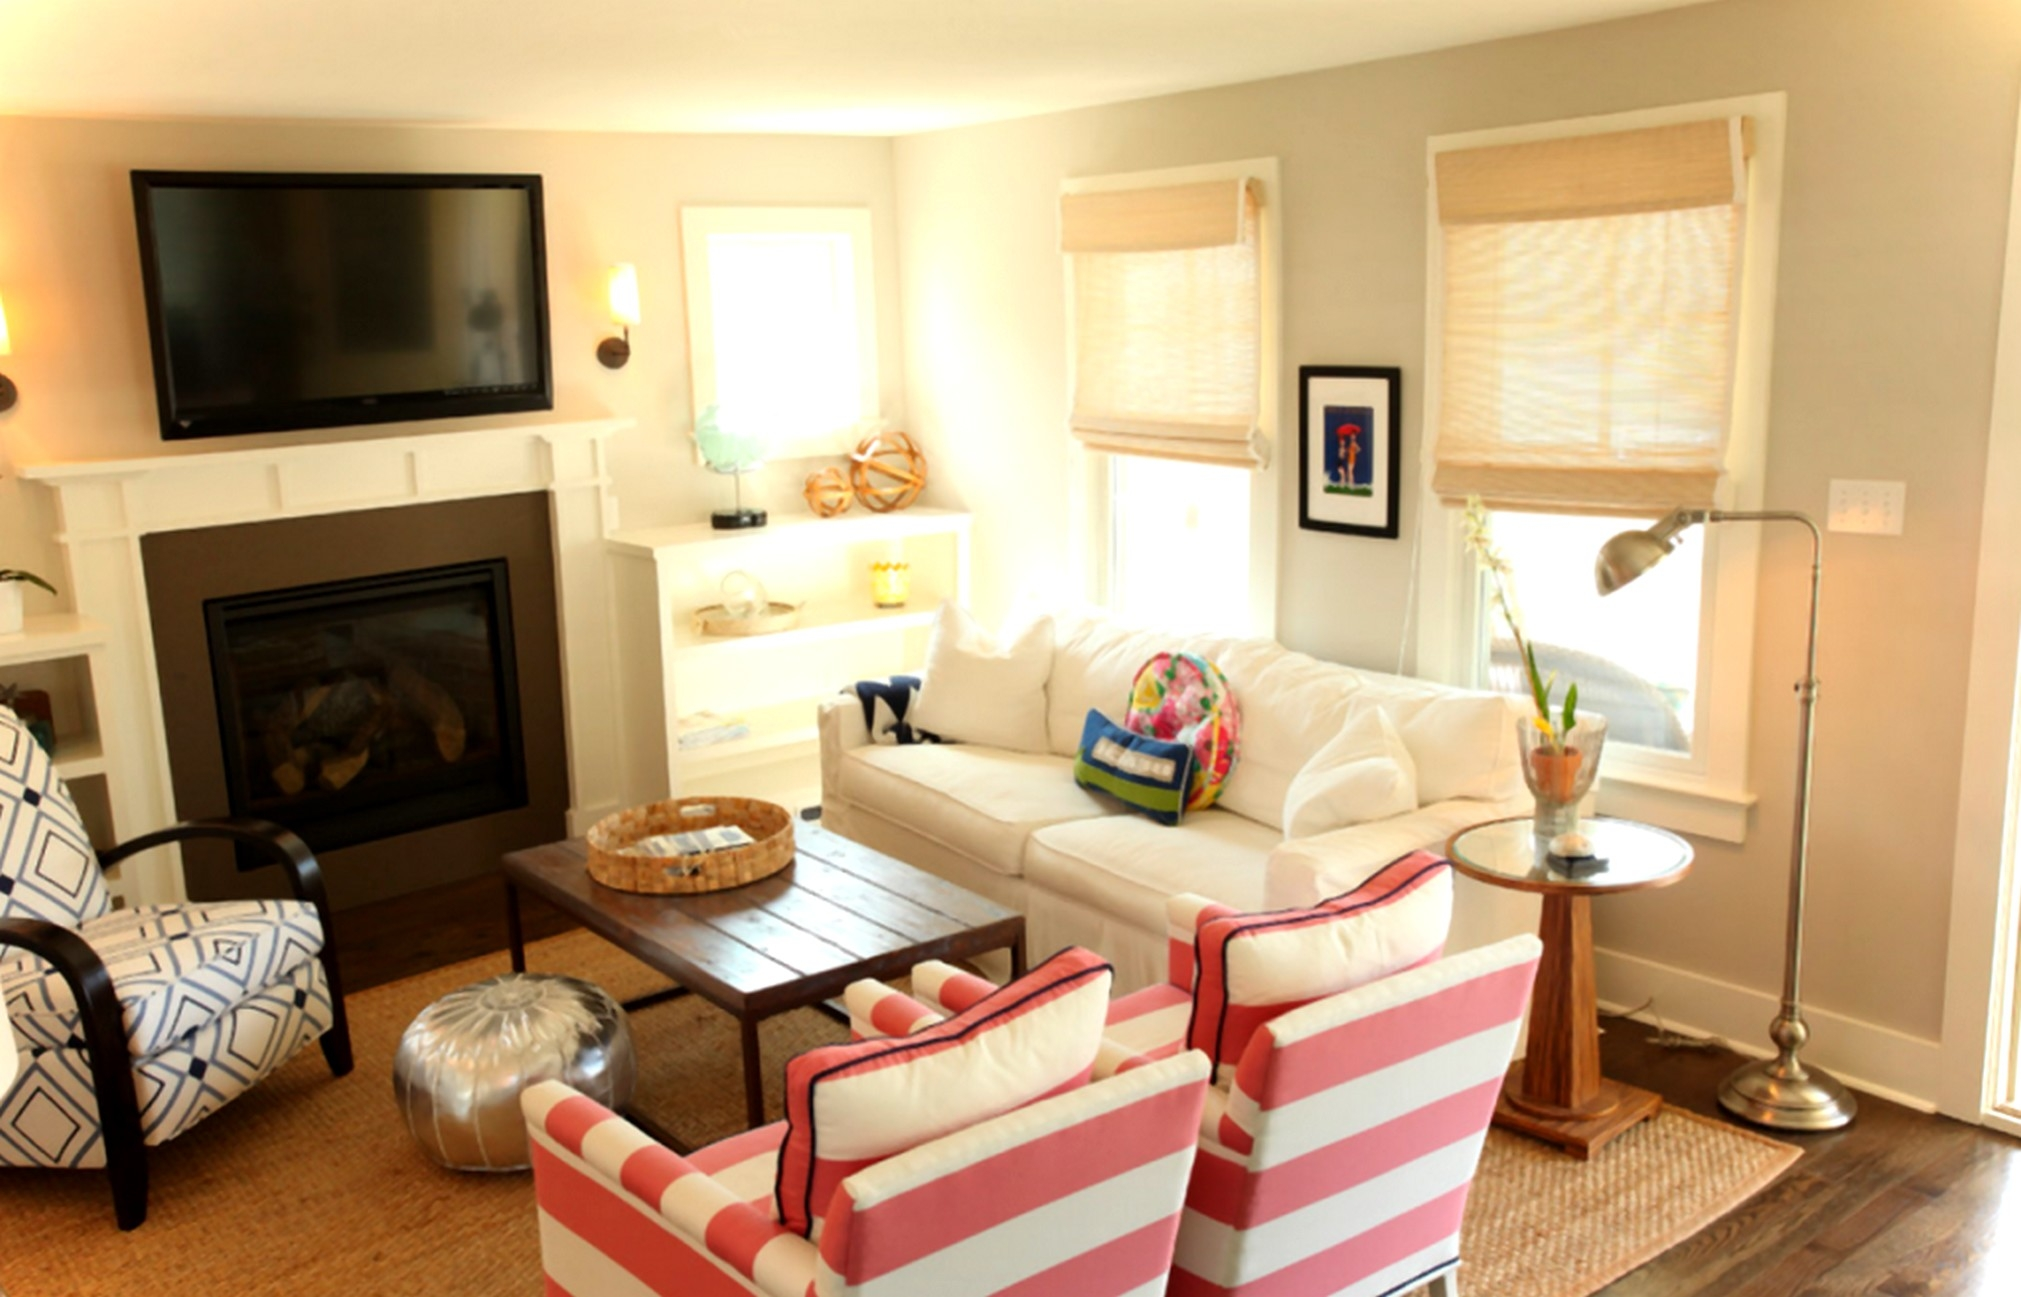 sophisticated mesmerizing unique fireplace and fabulous sofa of gorgeous living room layouts furniture arrangement living room living room furniture arrangement examples living room furniture grouping